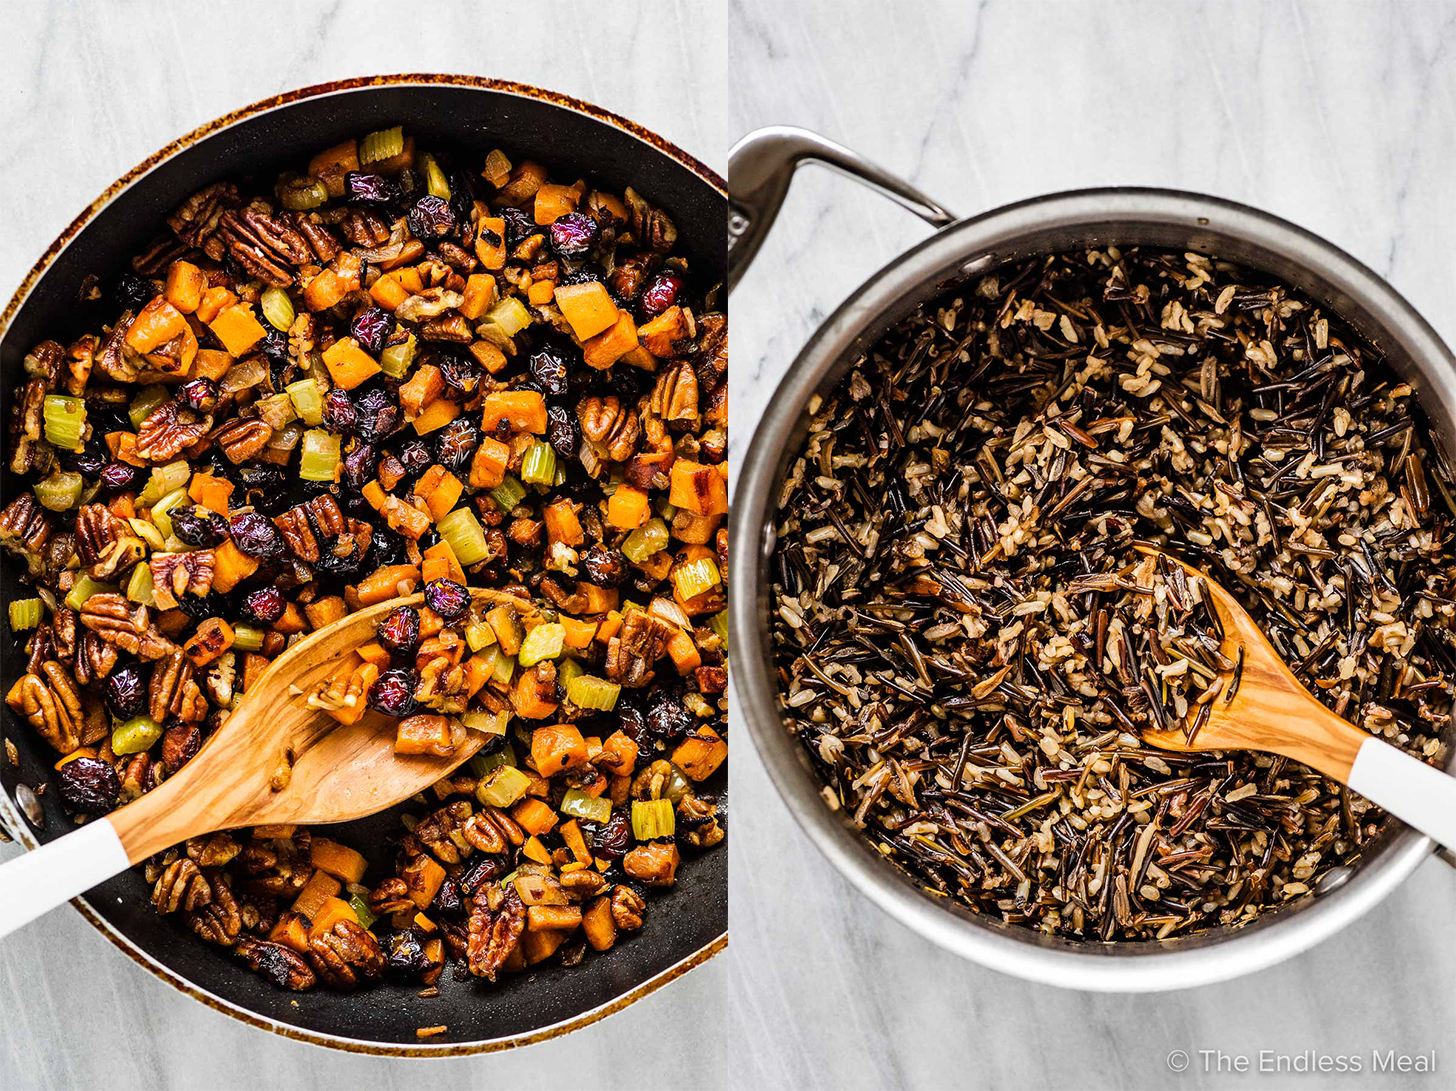 2 pictures showing the cooked wild rice and the sauteed veggies in a pan.